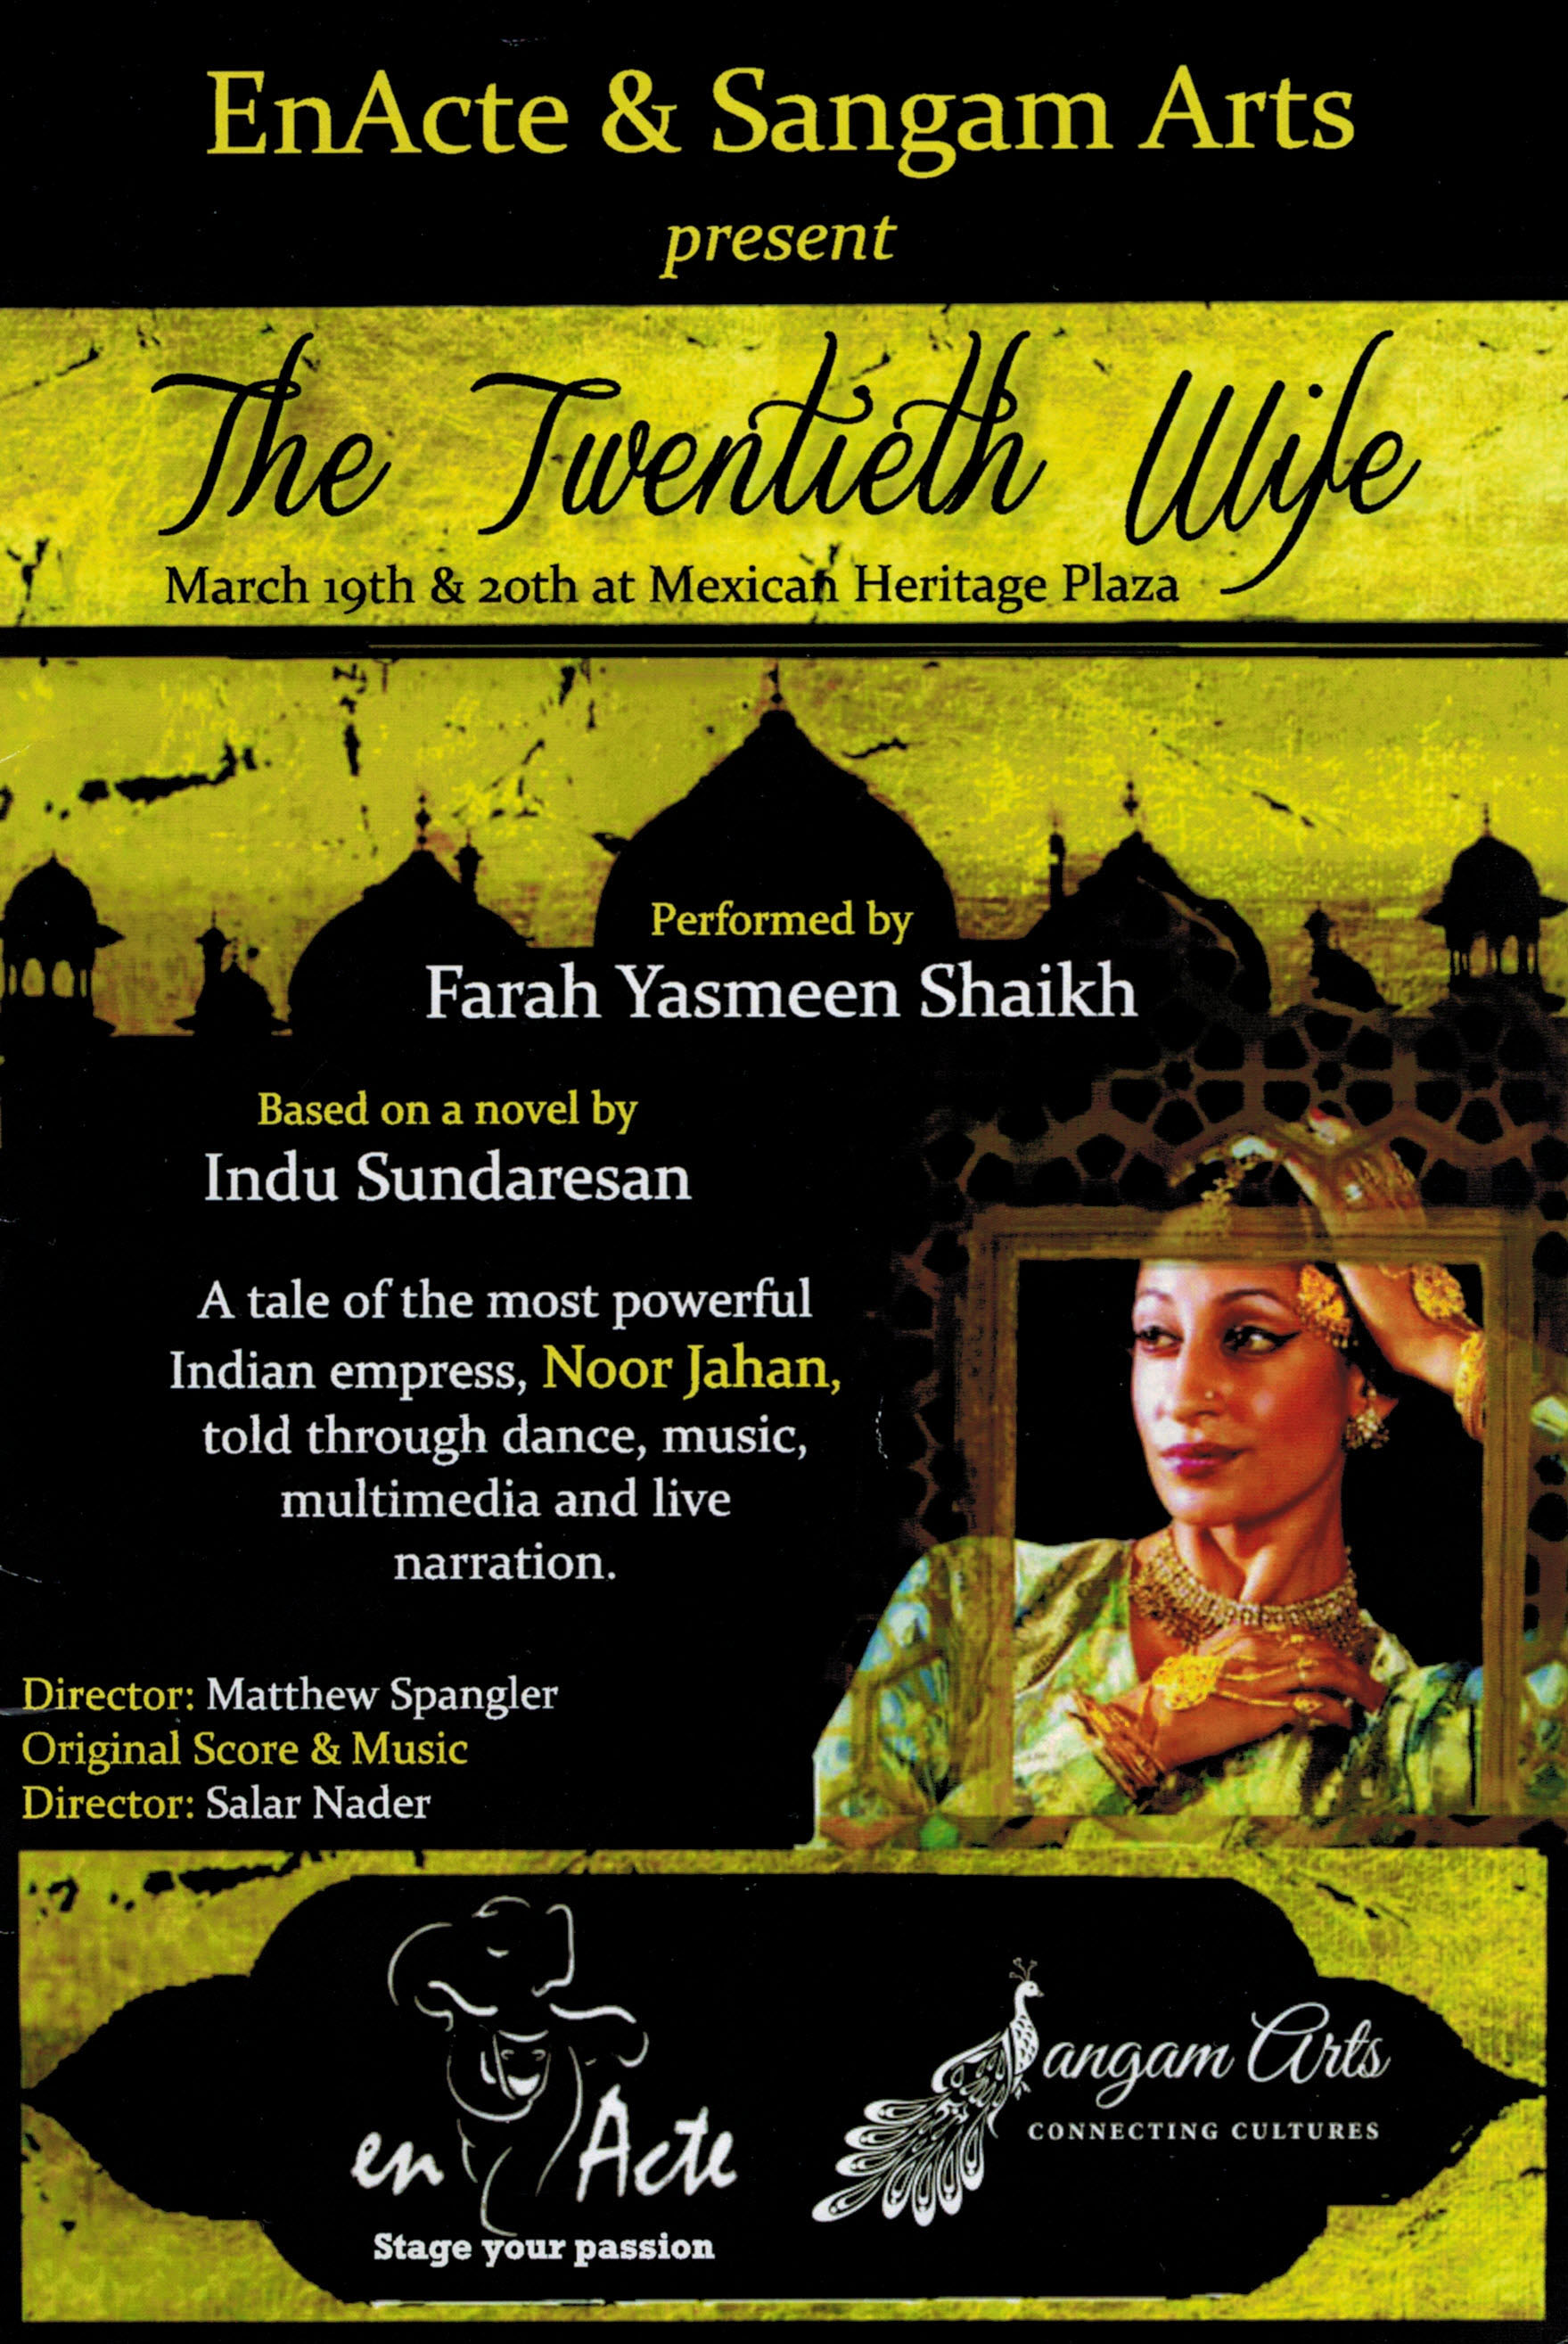 The Twentieth Wife - Program Cover